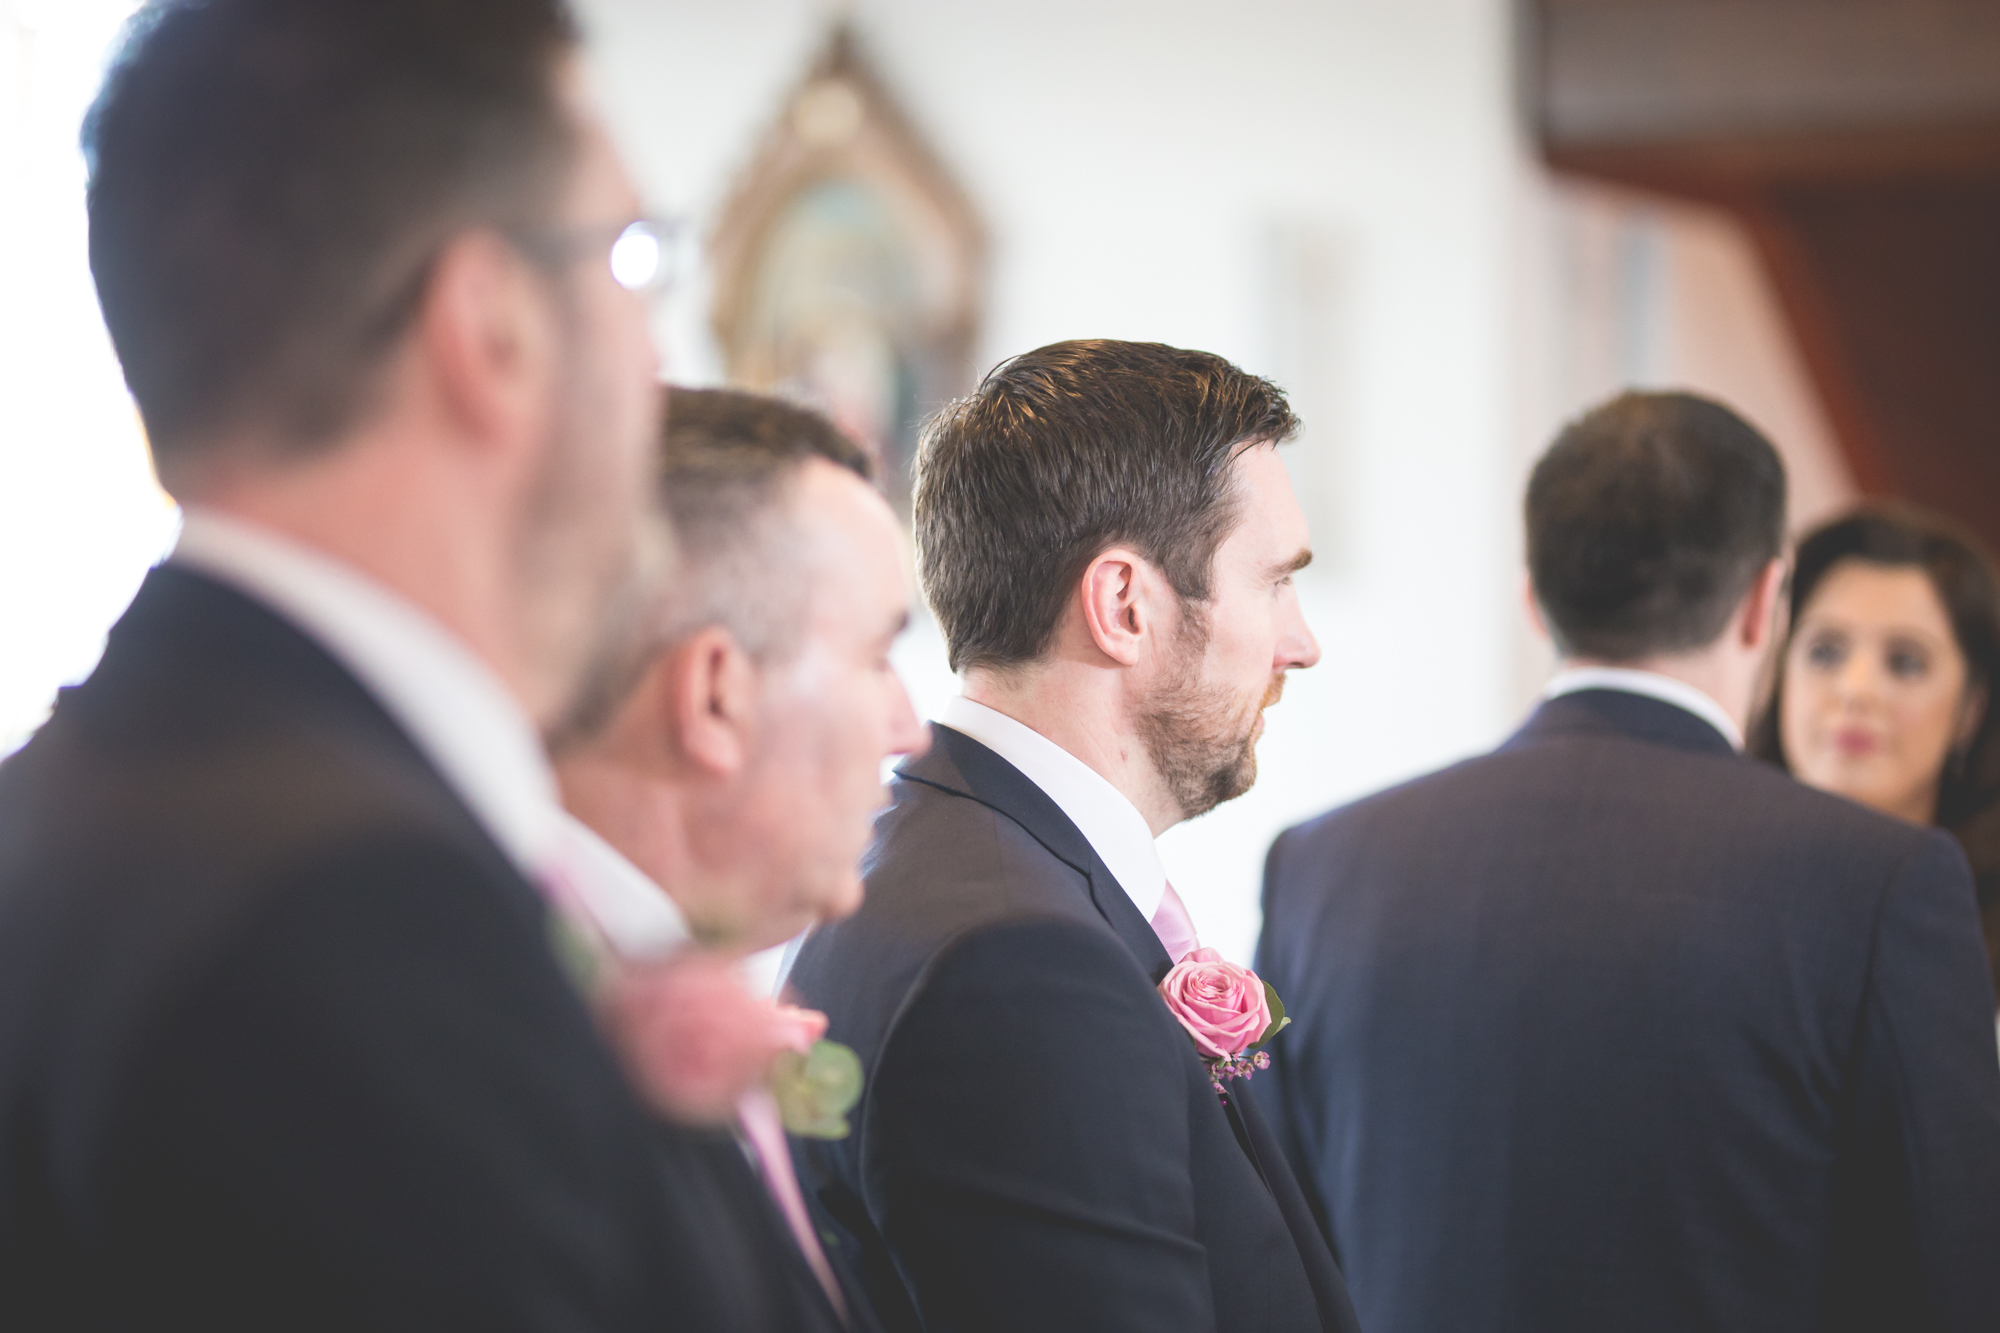 Francis&Oonagh-Ceremony-67.jpg